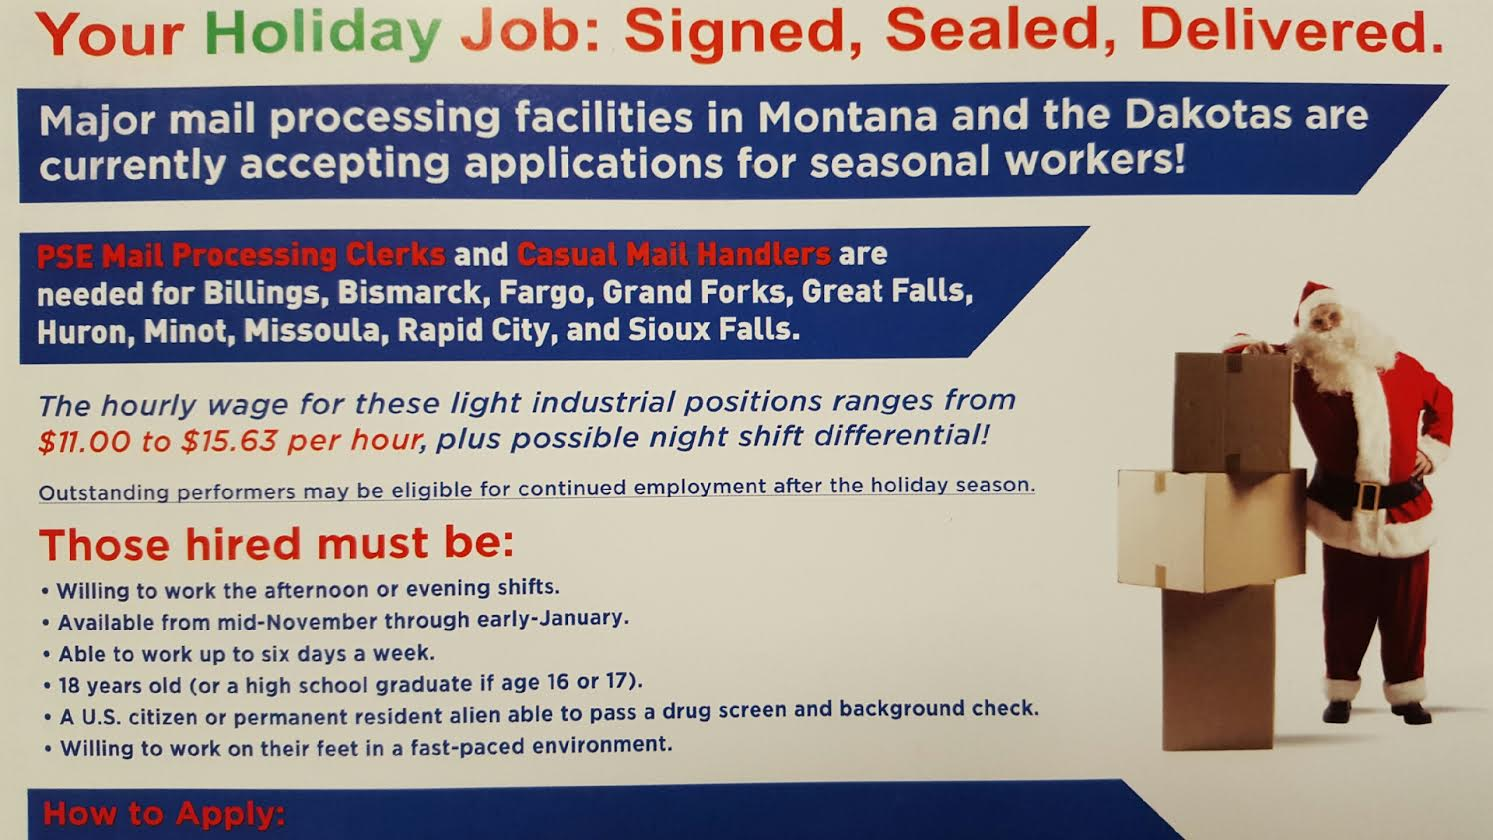 Your Holiday Job: Signed, Sealed, Delivered  Postal Service Looking